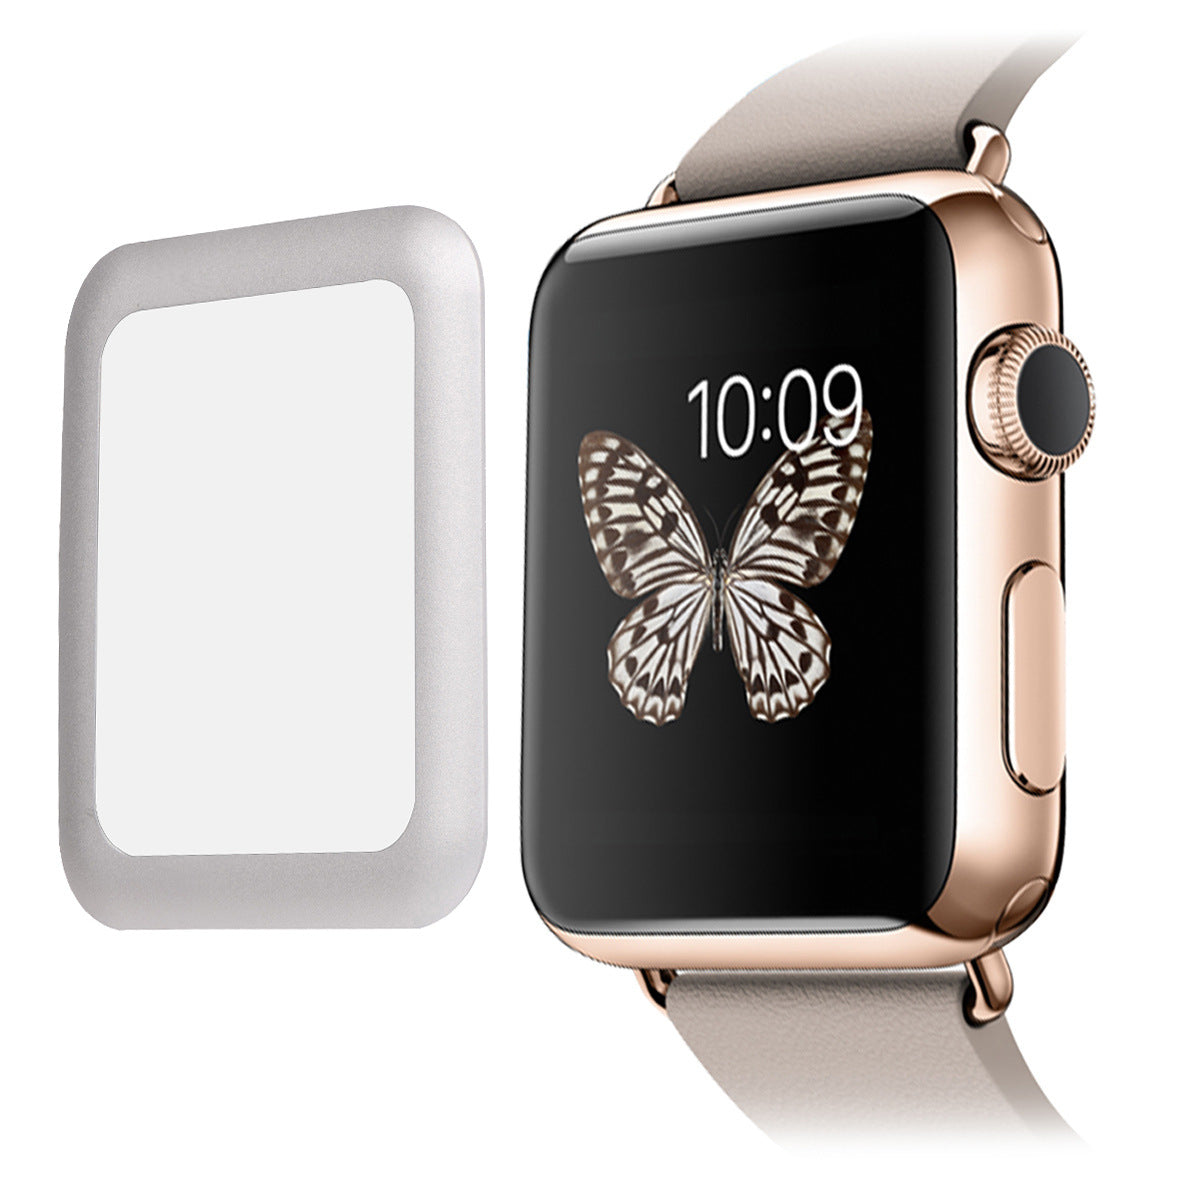 Apple Watch Tempered Film Apple Watch 2 Generation Suitable for Metal Frame Film Apple Watch Film